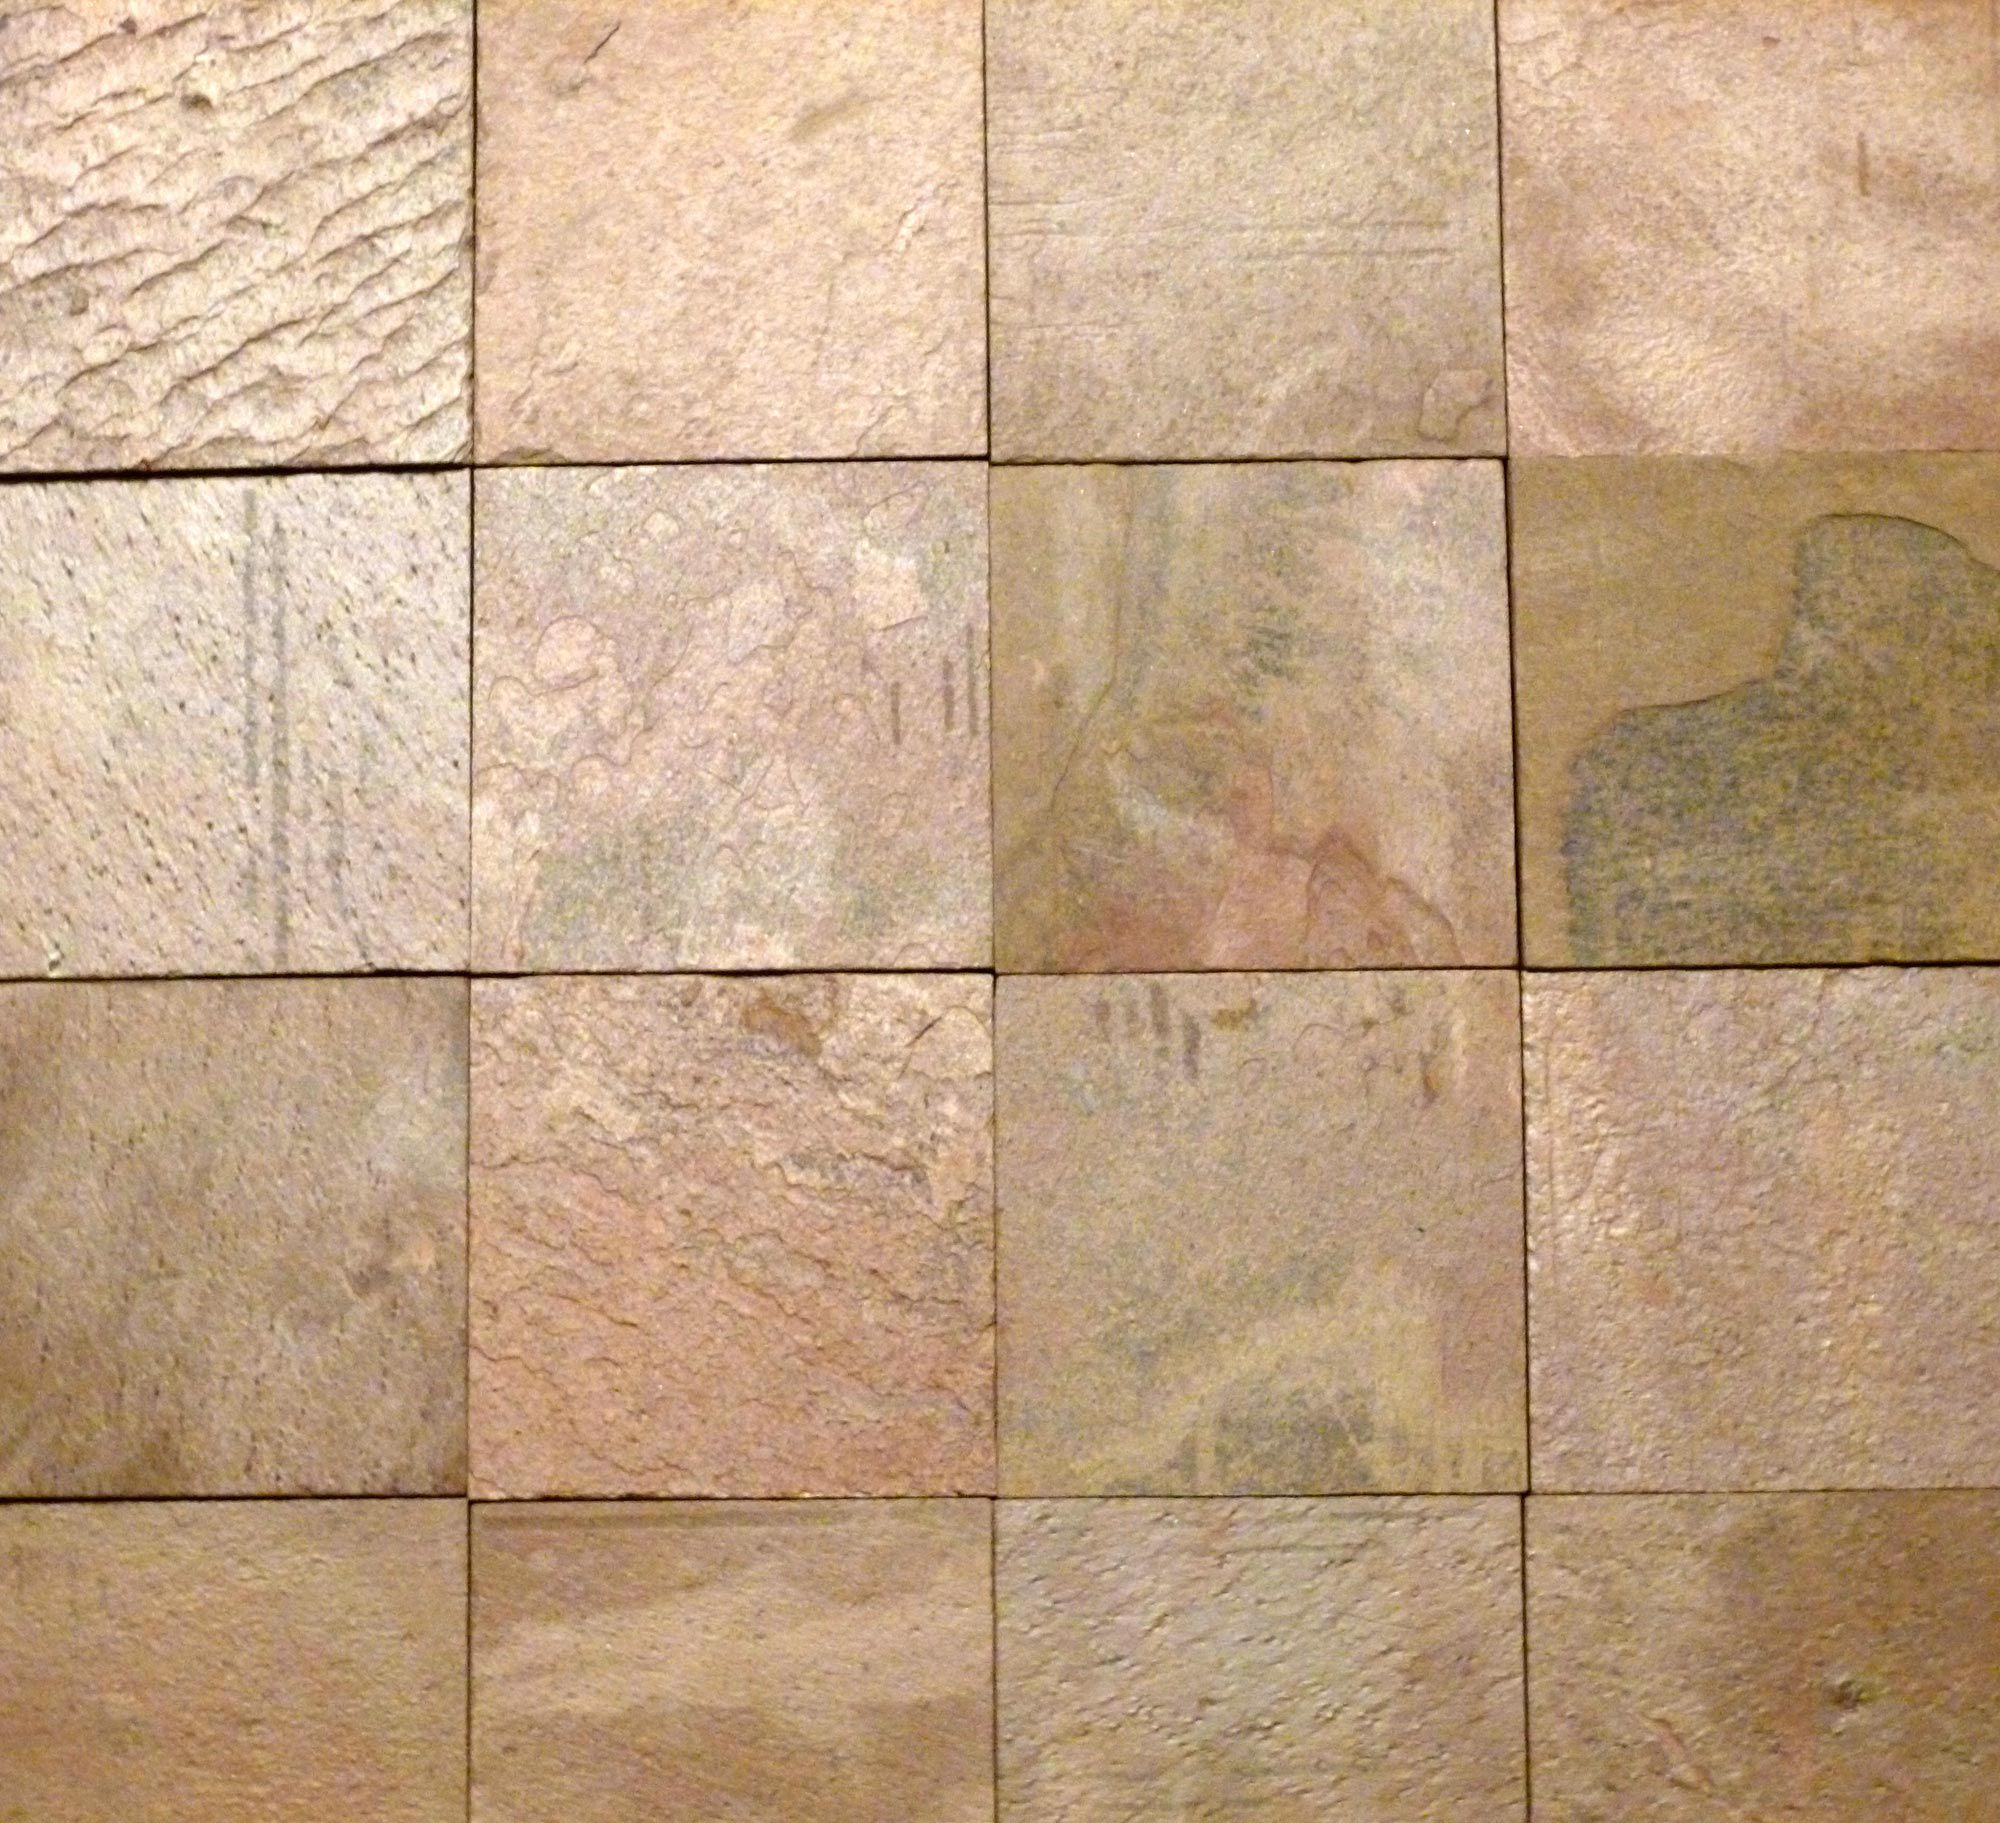 The benefits of natural stone vs brick paver flooring doublecrazyfo Images